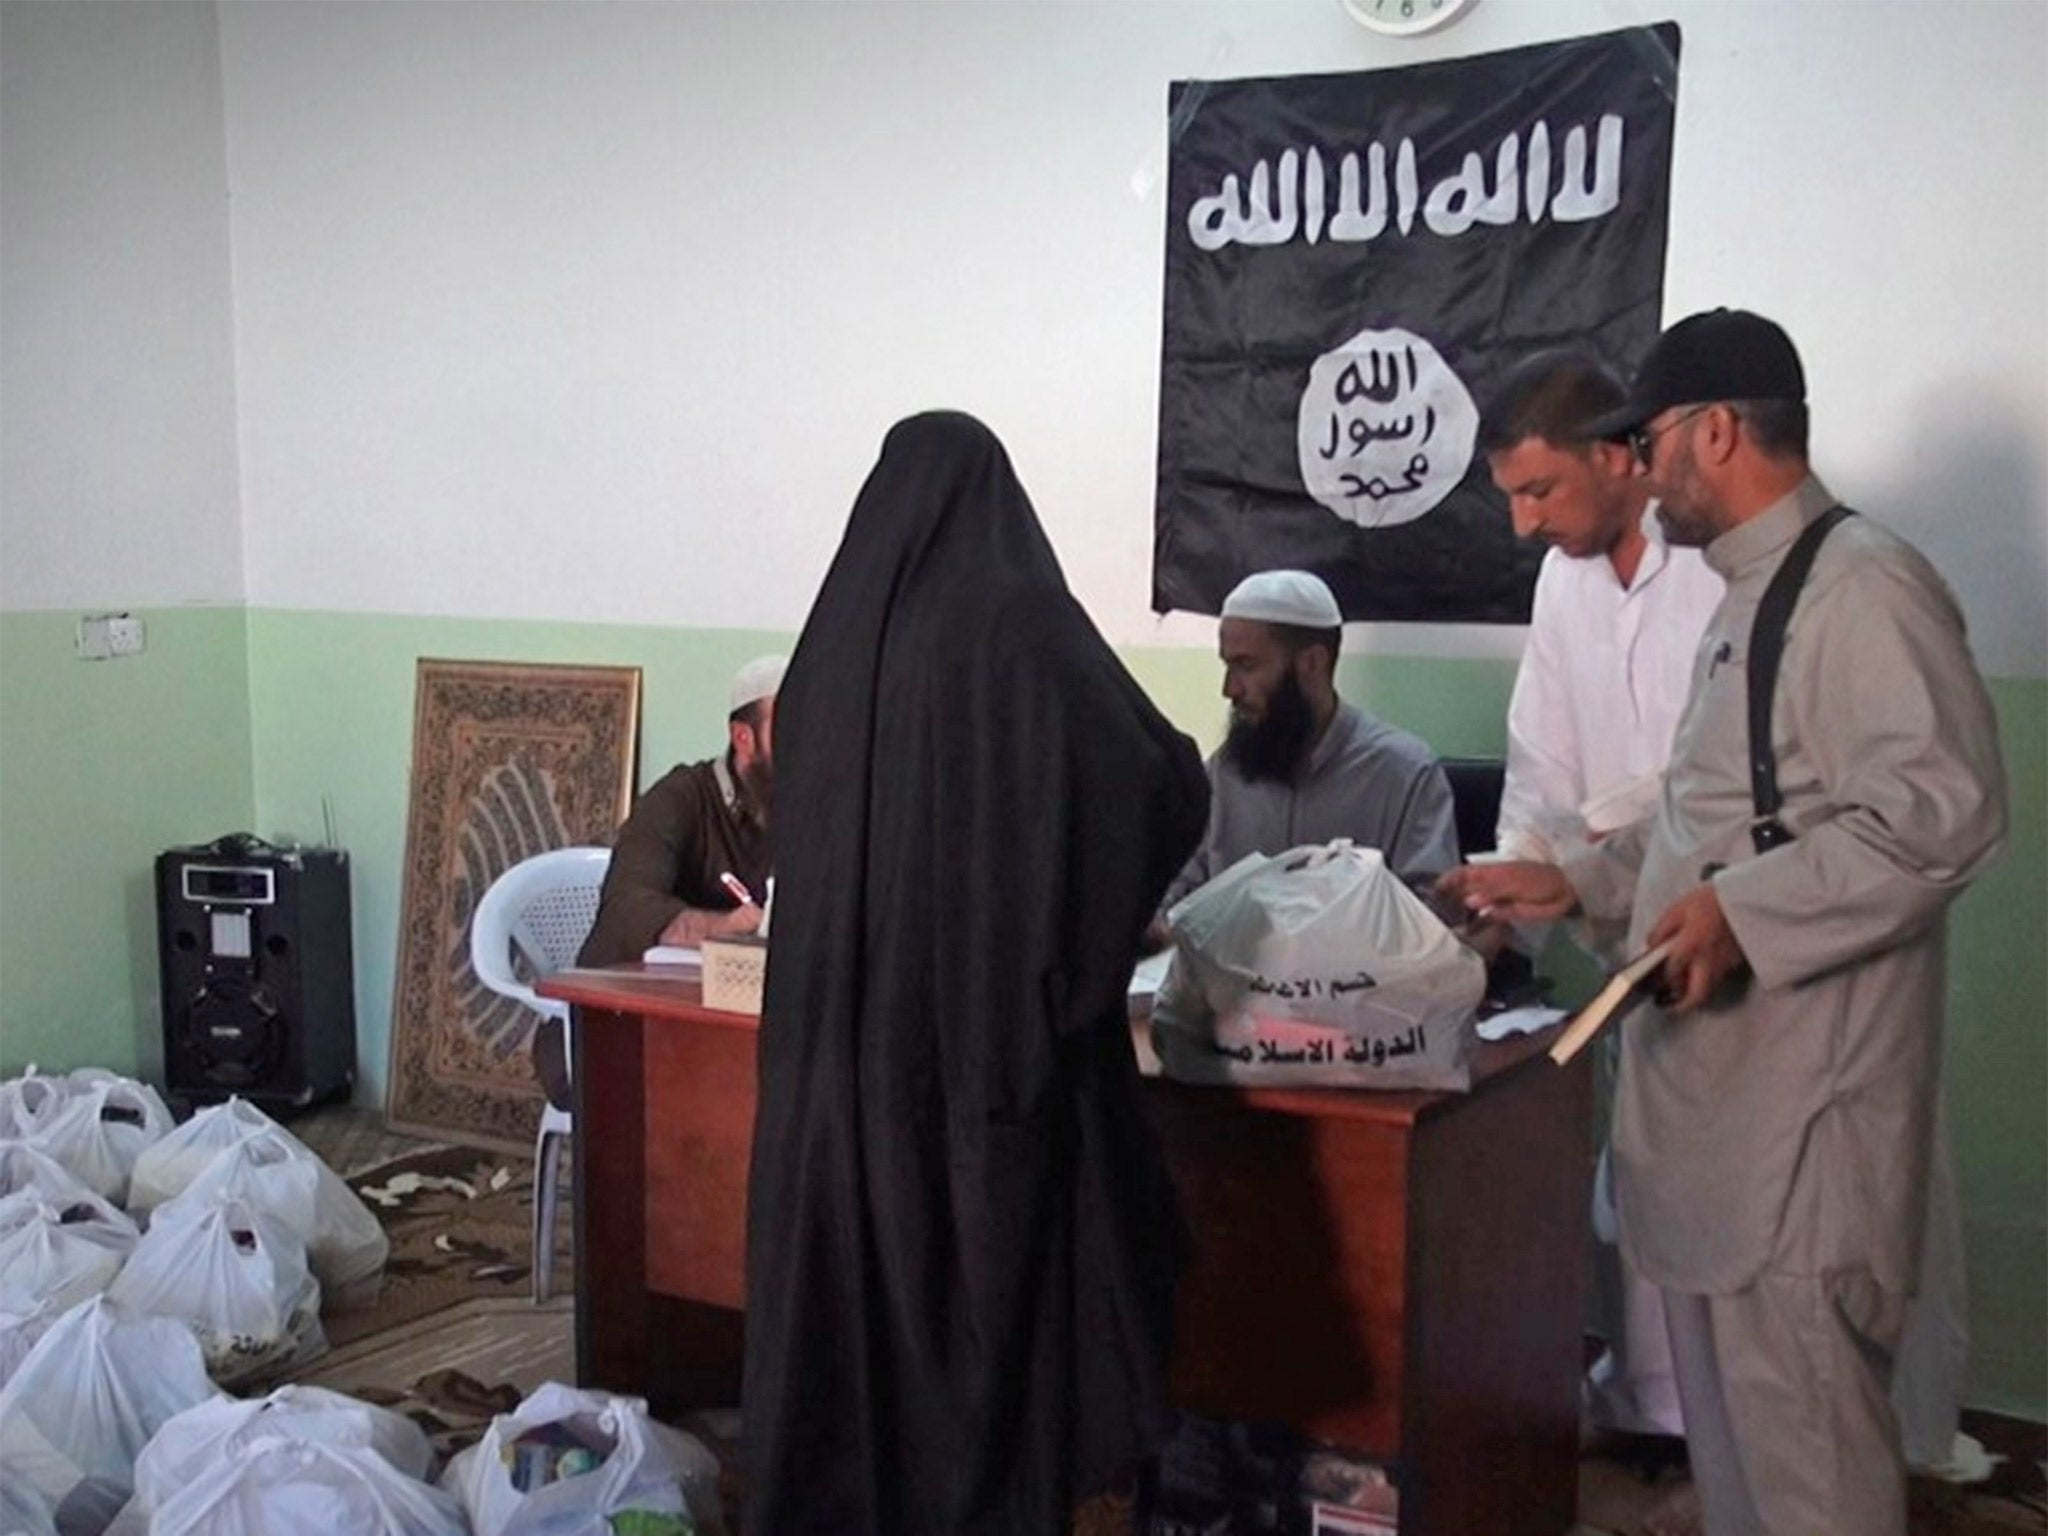 Iraqi grandmother 'decapitated Isis fighters and cooked their heads